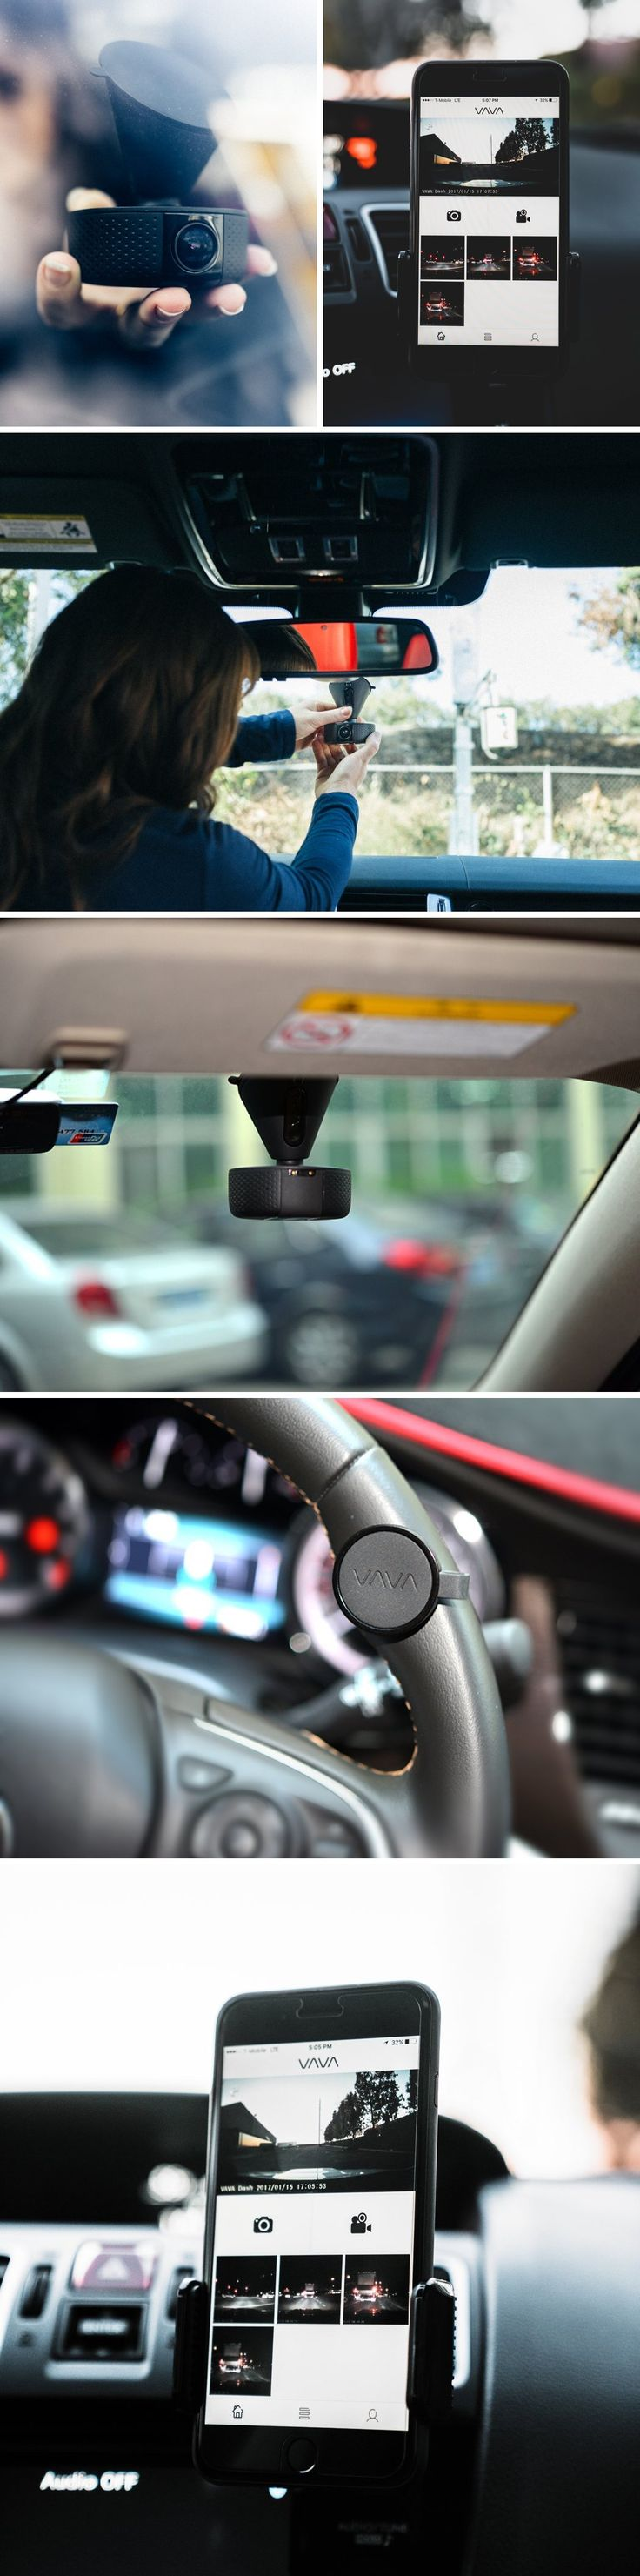 Ever wish you could seamlessly capture and review what's happening on the road in real-time? Now you can. Meet the VAVA Dash Cam, the most versatile car dash camera yet.